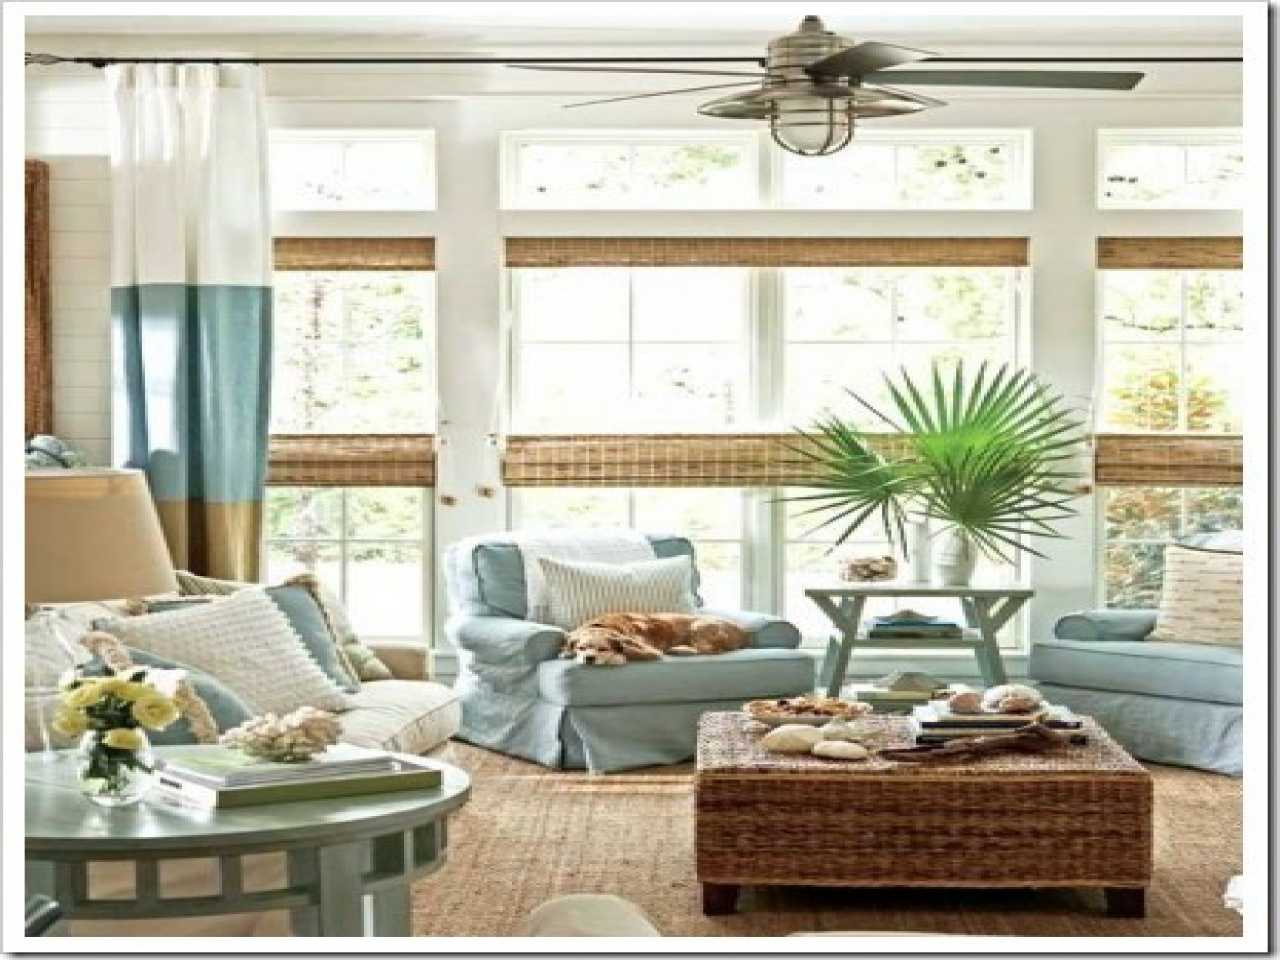 House beautiful window treatments coastal living room